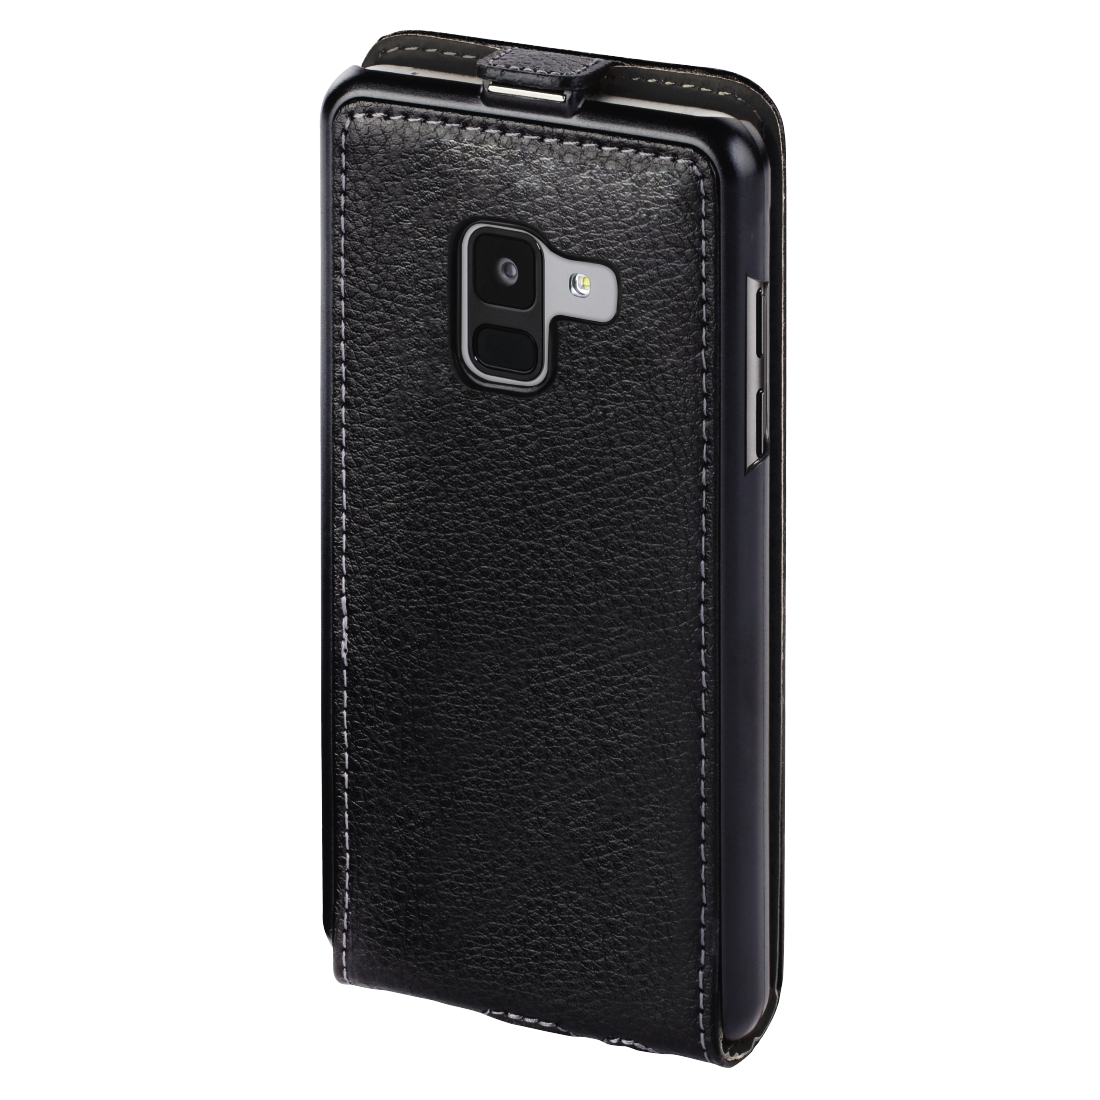 abx2 High-Res Image 2 - Hama, Smart Case Flap Case for Samsung Galaxy A8 (2018), black